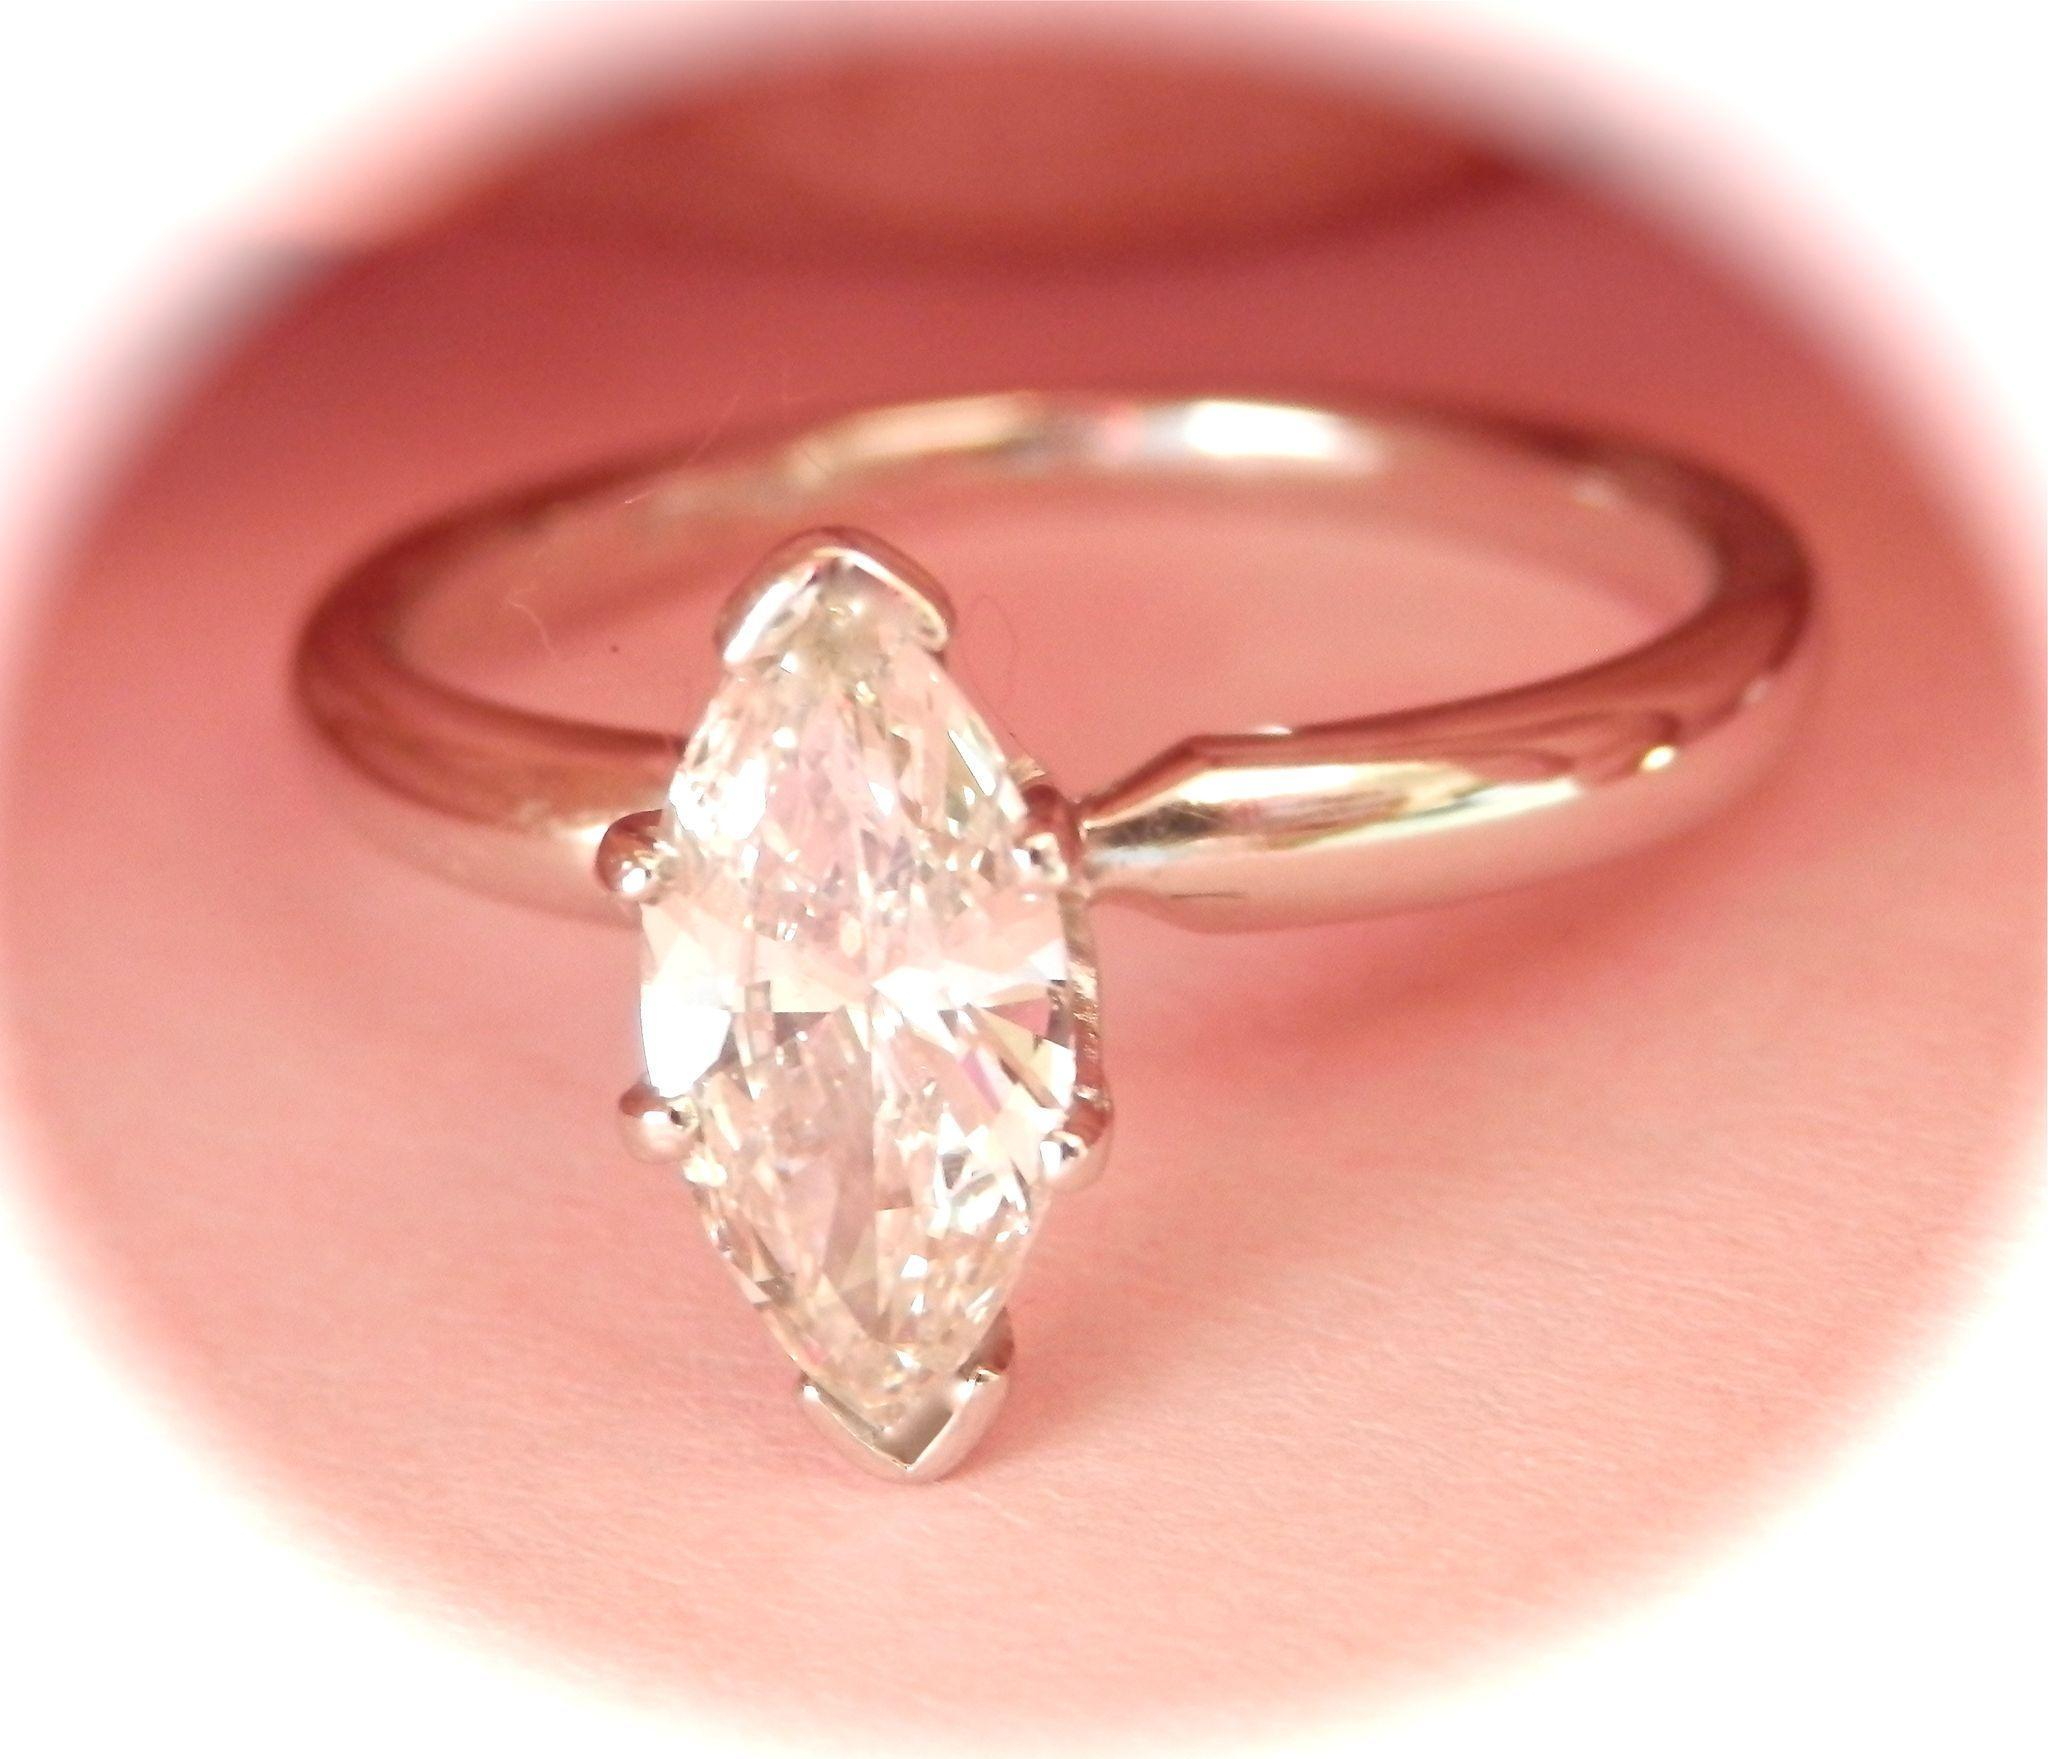 Terrific 14K W/Gold Platinum 0.81 ct. VS Diamond Solitaire Ring